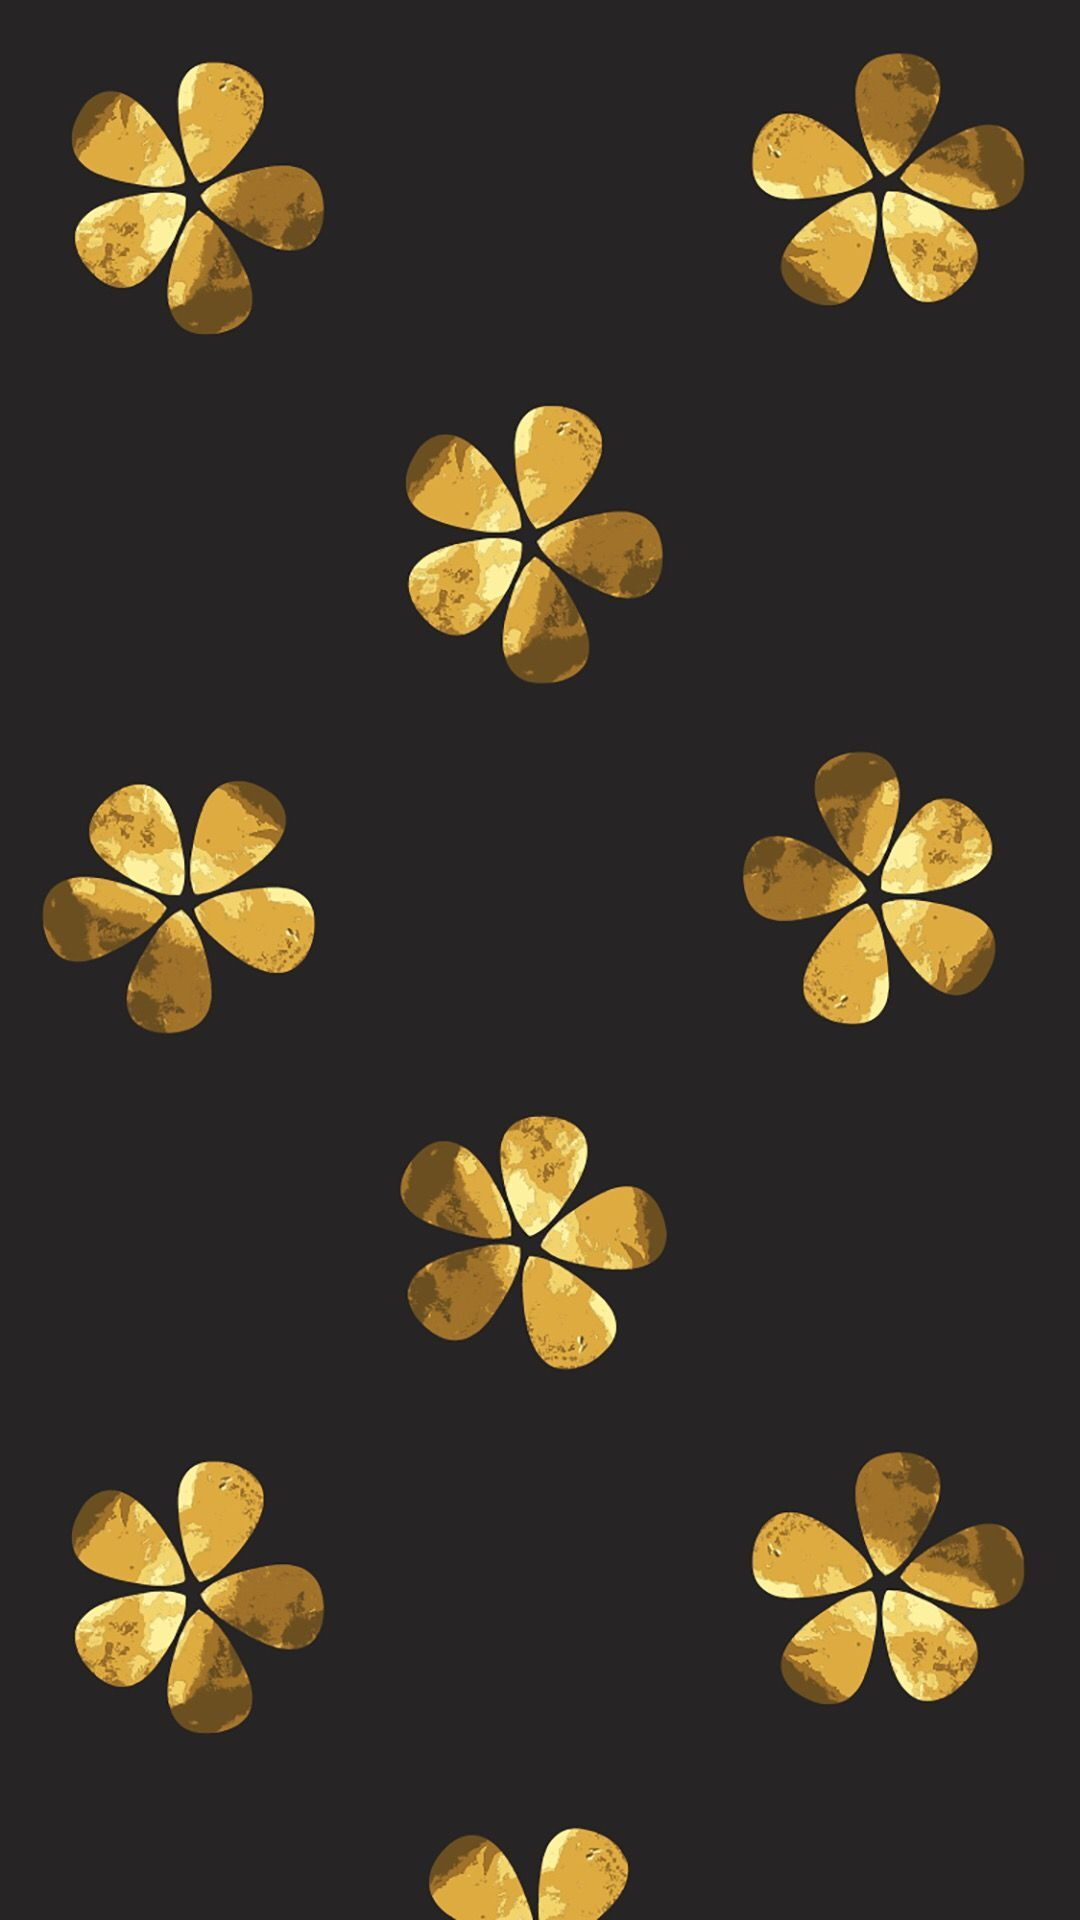 Pin By Mccarthyayanna On Phone Wallpaper Yellow Aesthetic Aesthetic Wallpapers Gold Wallpaper